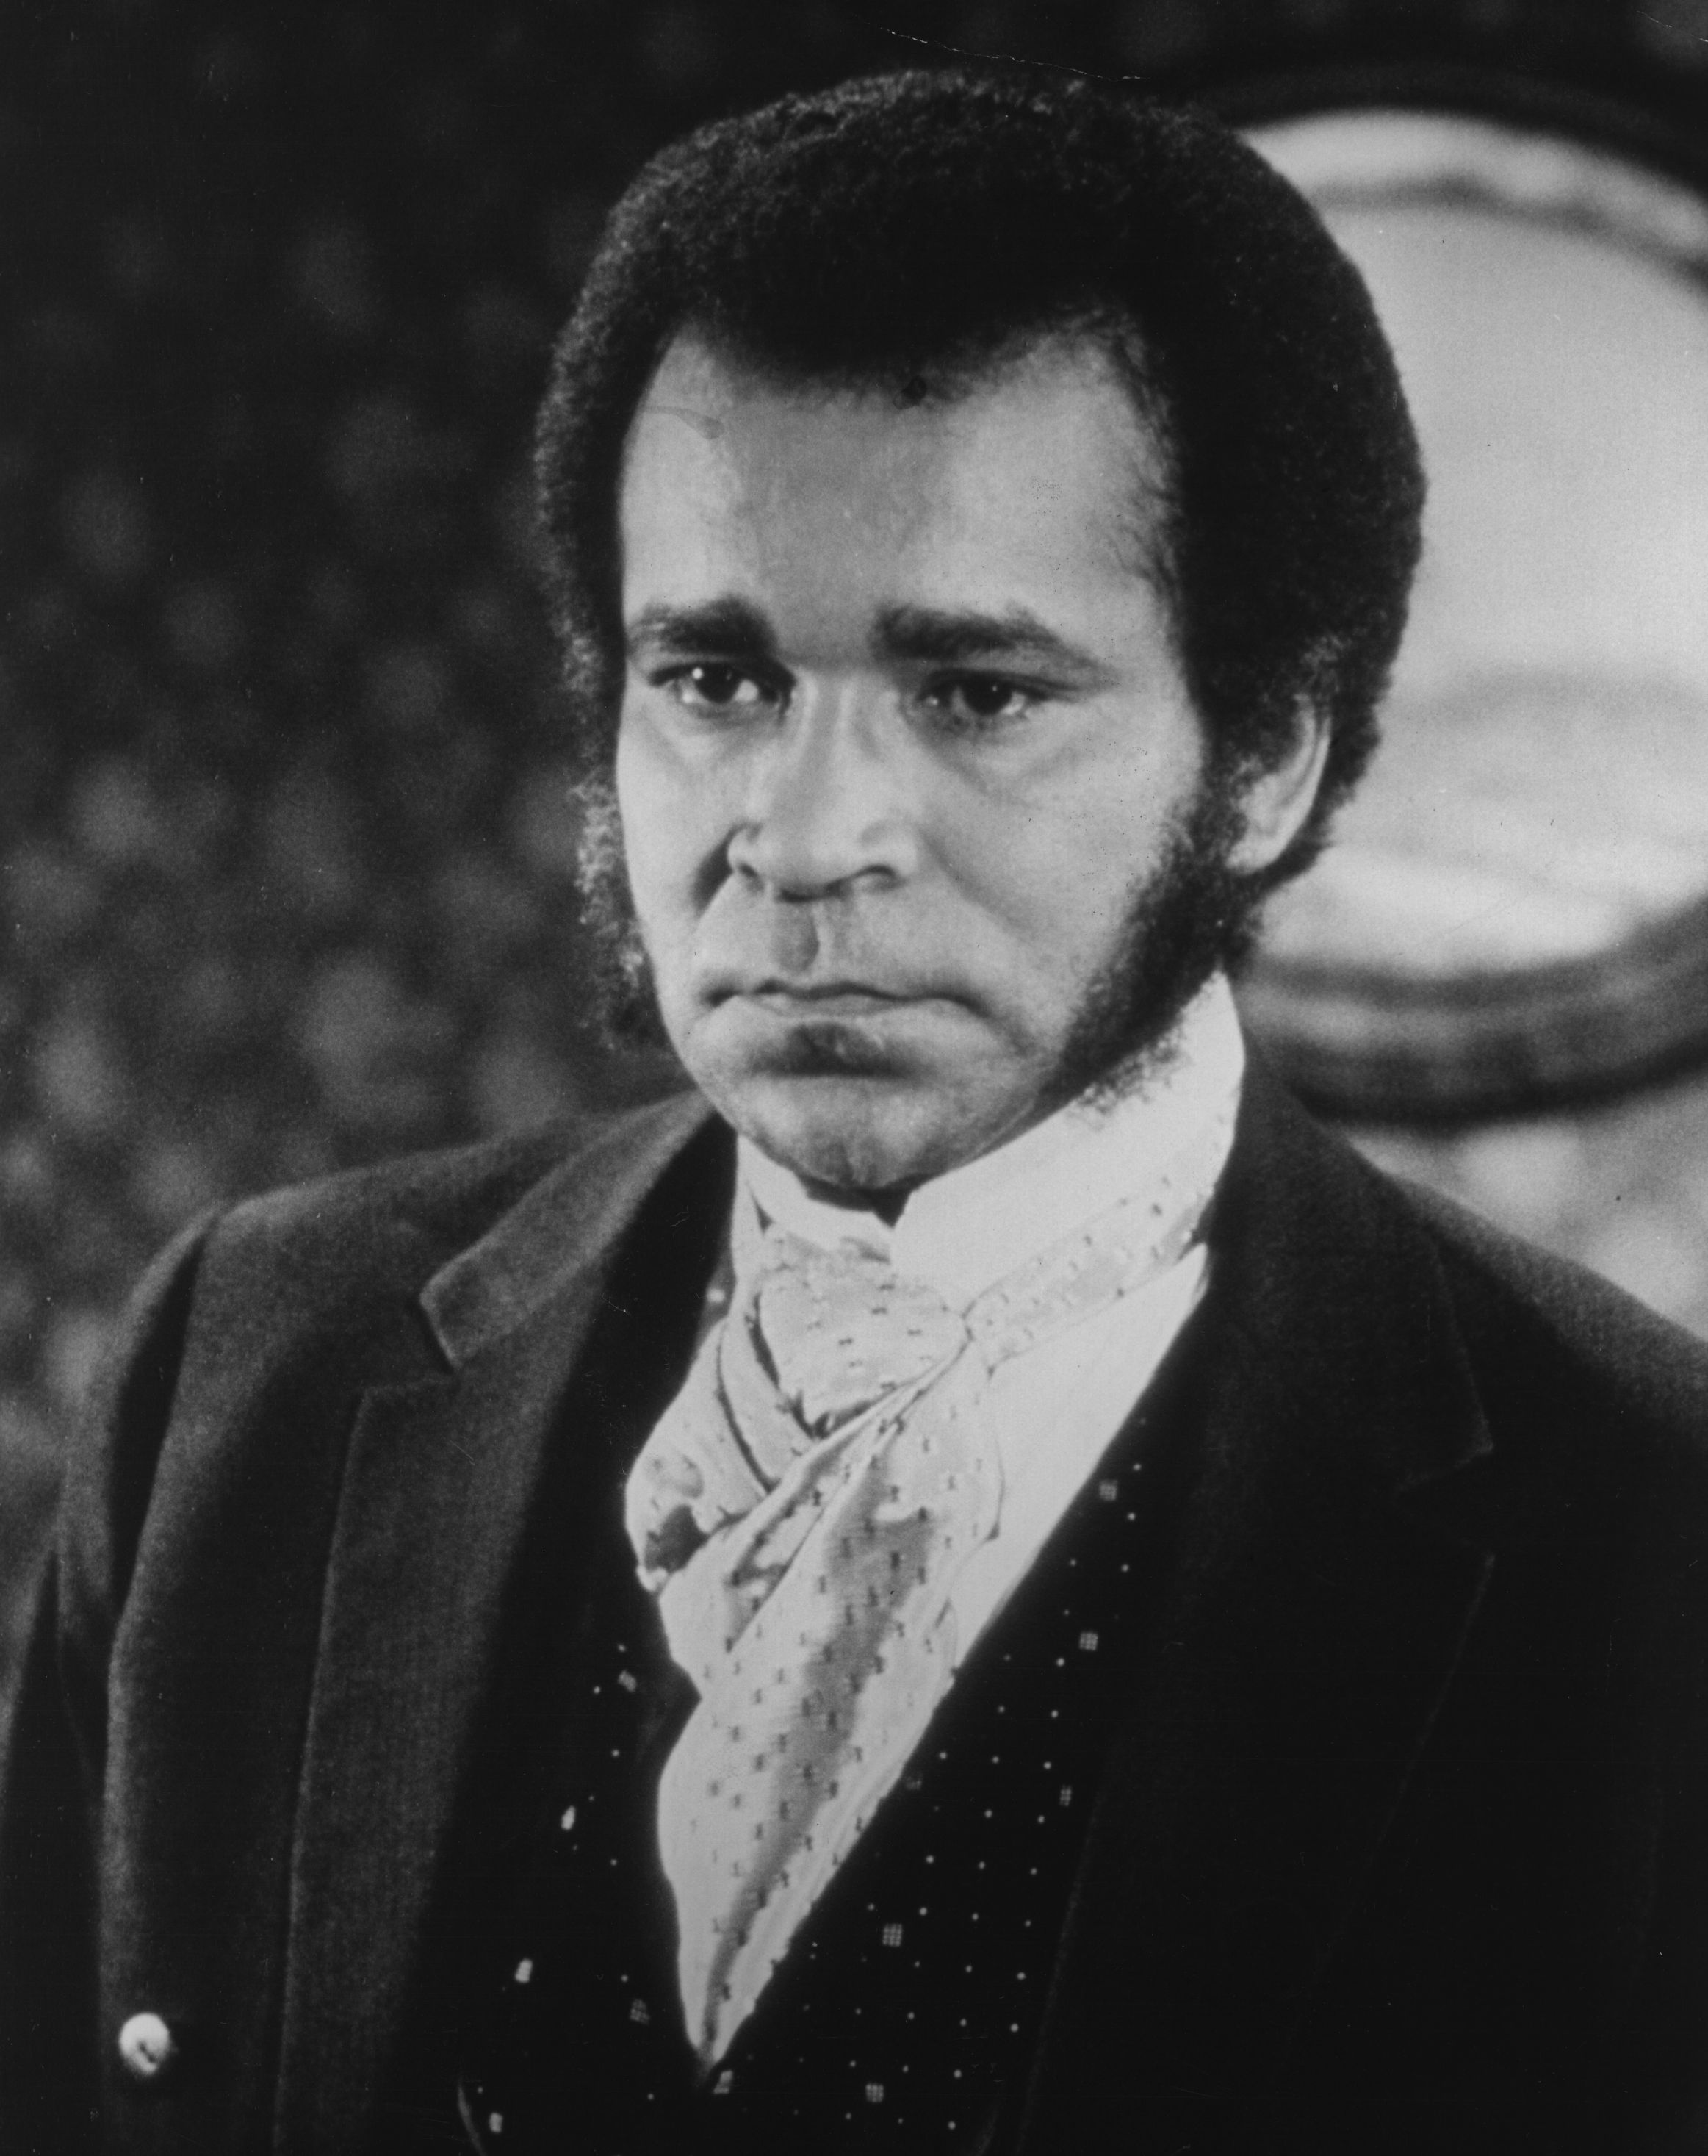 Greg Morris in a scene from 'Roots: the Next Generations', a continuation series of 'Roots', 1979 | Photo: GettyImages